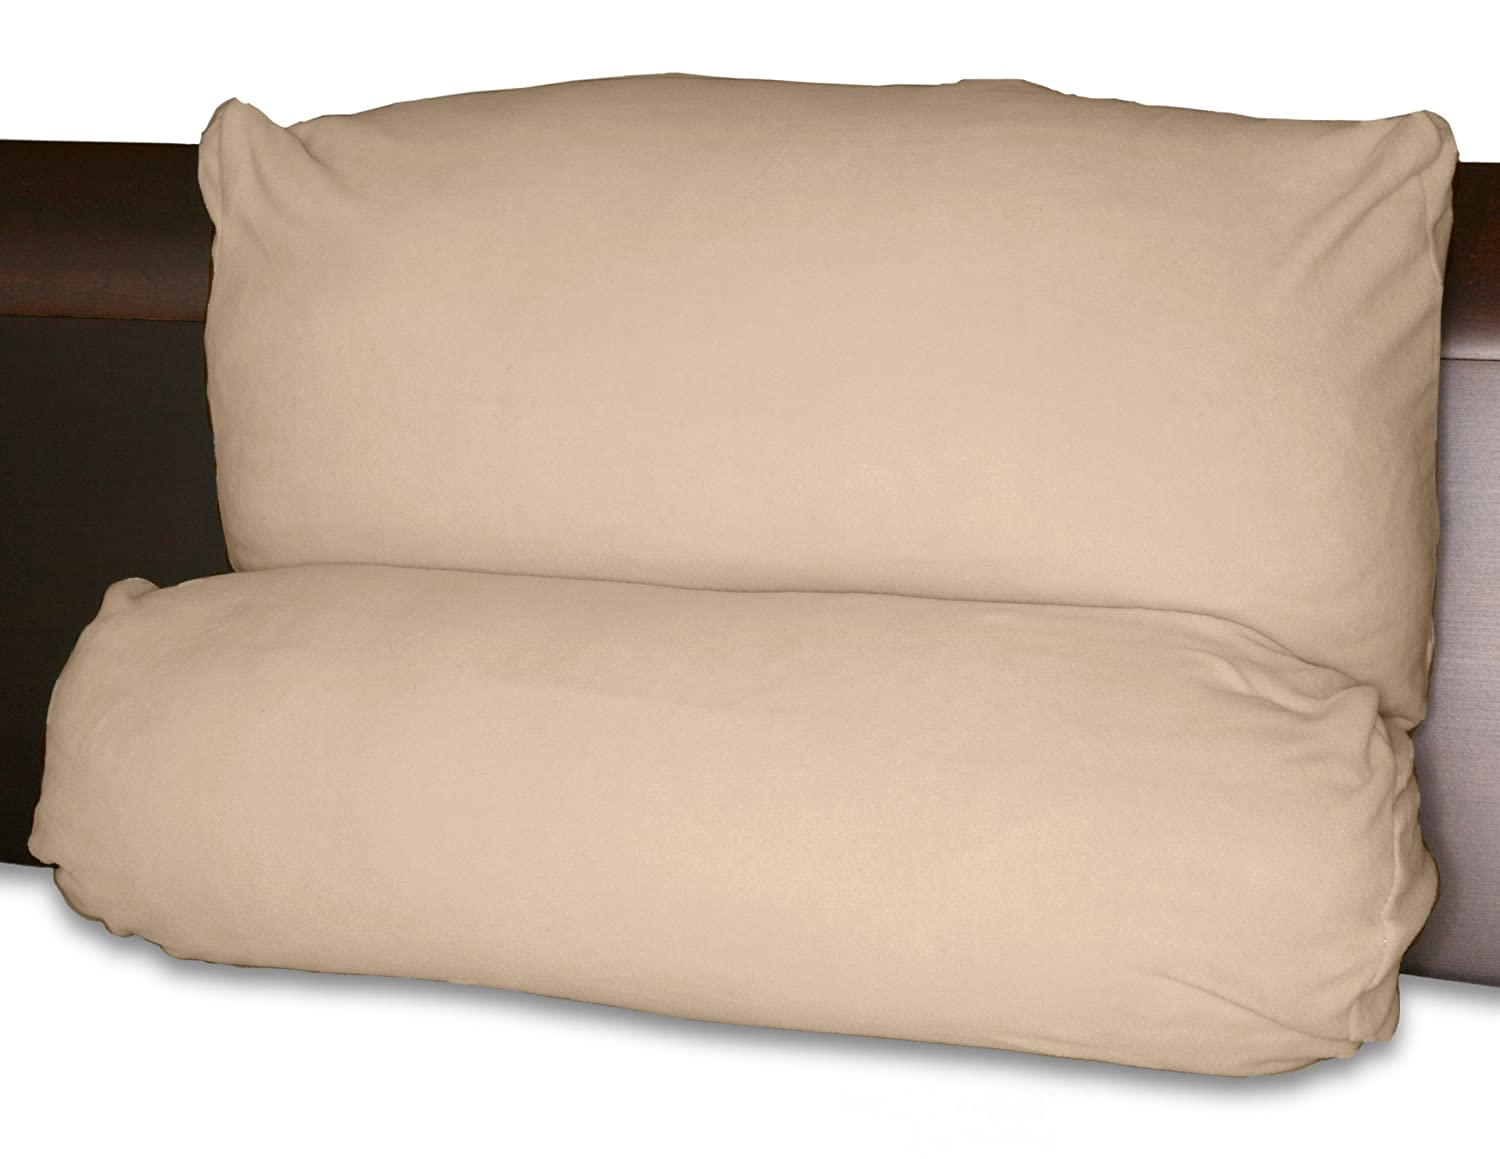 Multi-Positional Back Pillow - with Extra Tan/Taupe Micro Fiber Cover Microfiber Cover - Best Two-Piece Lounge Pillows while Reading or Watching TV Deluxe Comfort MLTPP-001-01_TAN_PA